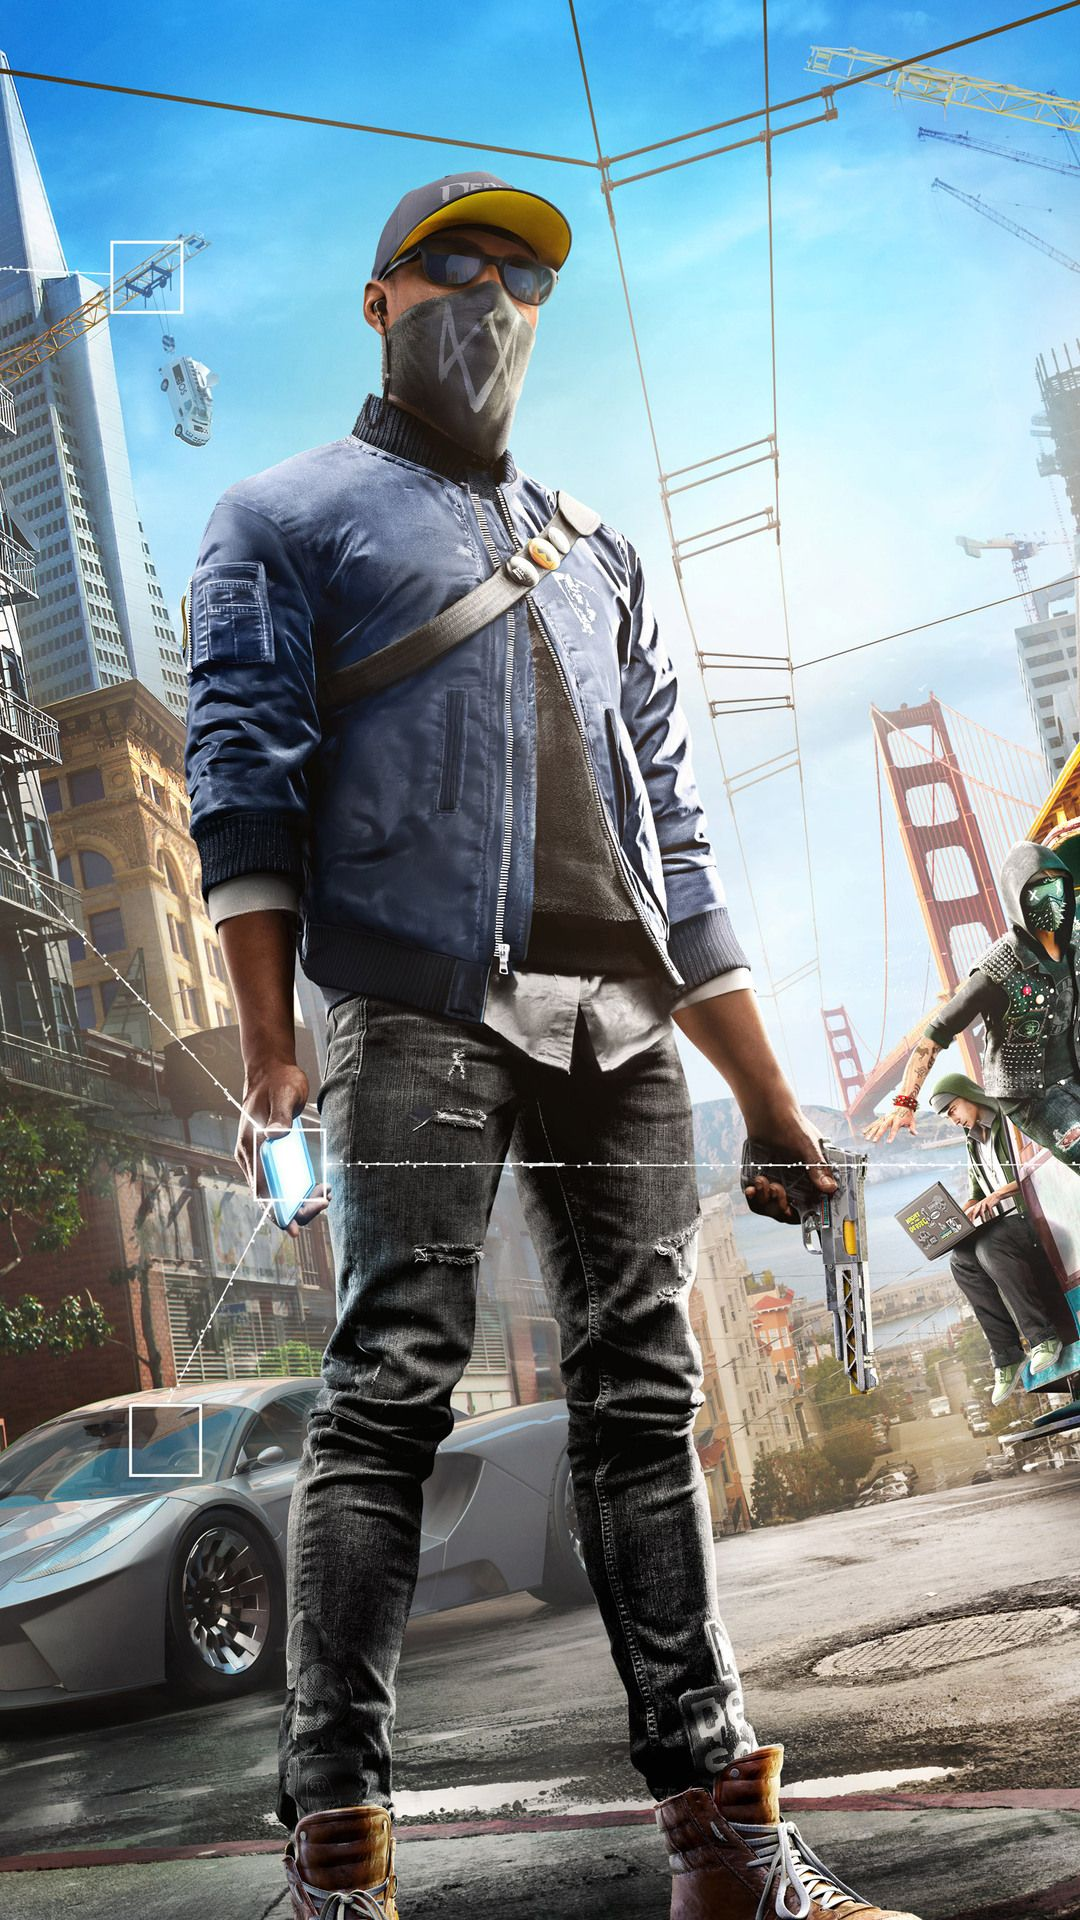 Watch Dogs T Bone Dlc Games Hd K Wallpapers Watch Dogs Gaming Wallpapers Watch Dogs Game